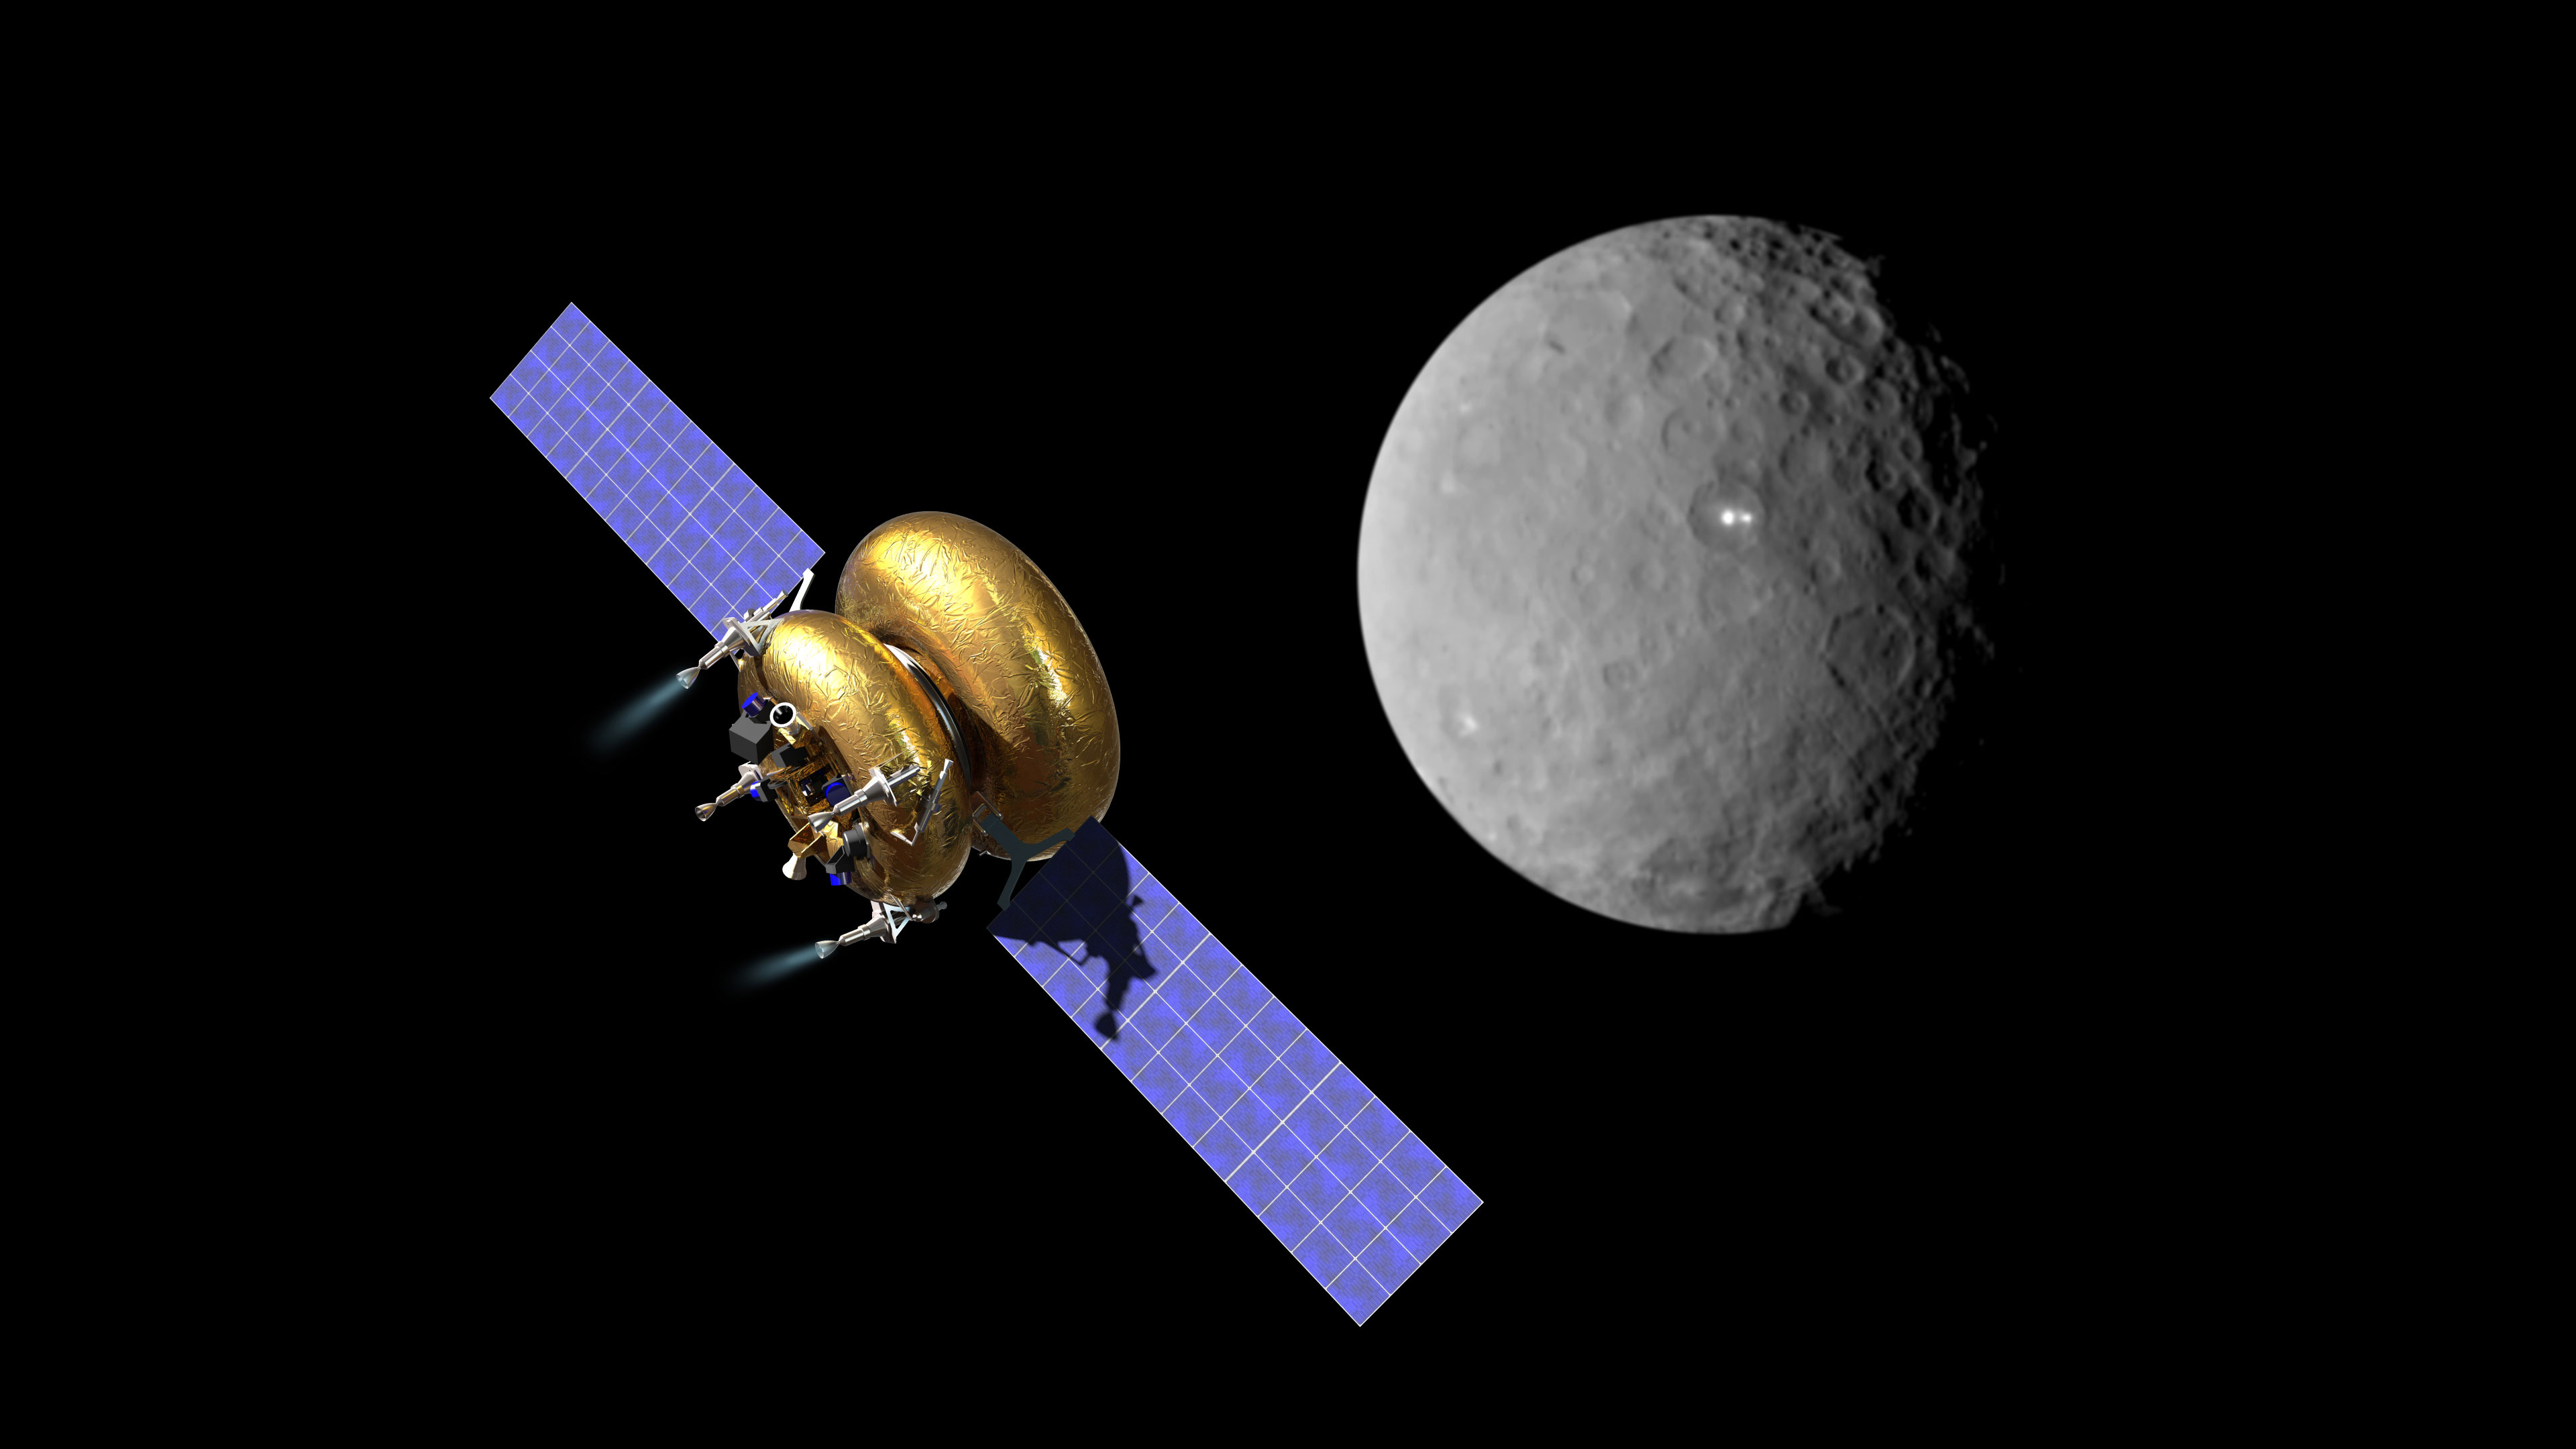 Artist's illustration of the Arkyrd 200. The spacecraft will be able collect data on the target's shape, rotation, density, and surface composition – giving it the ability to characterize potential mining value. Credit: Planetary Resources